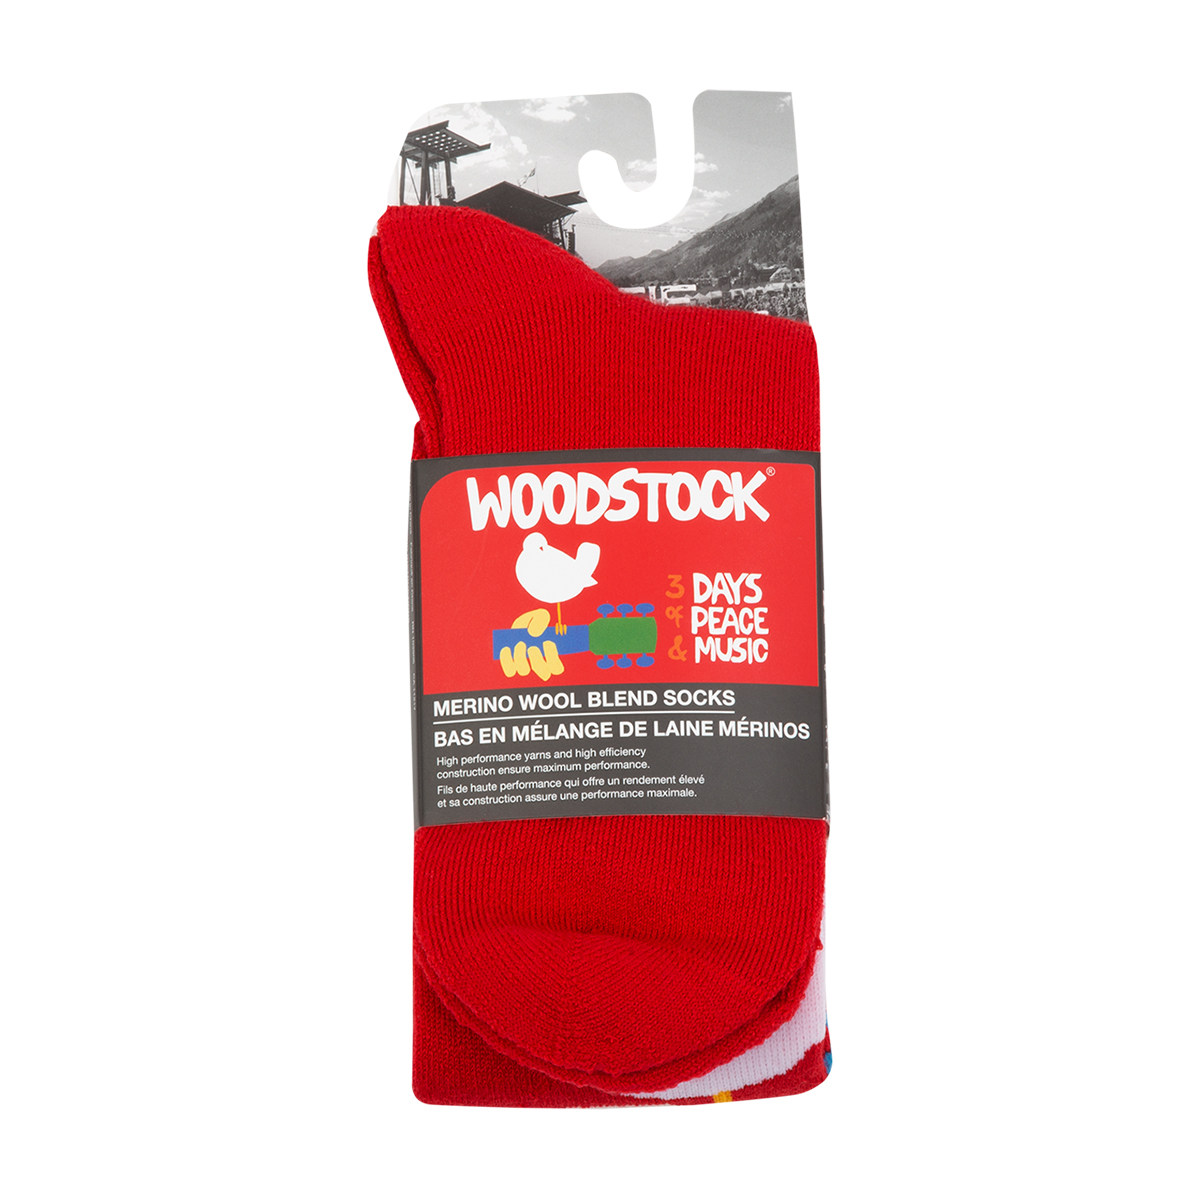 Woodstock 3 Days of Peace Wool Socks